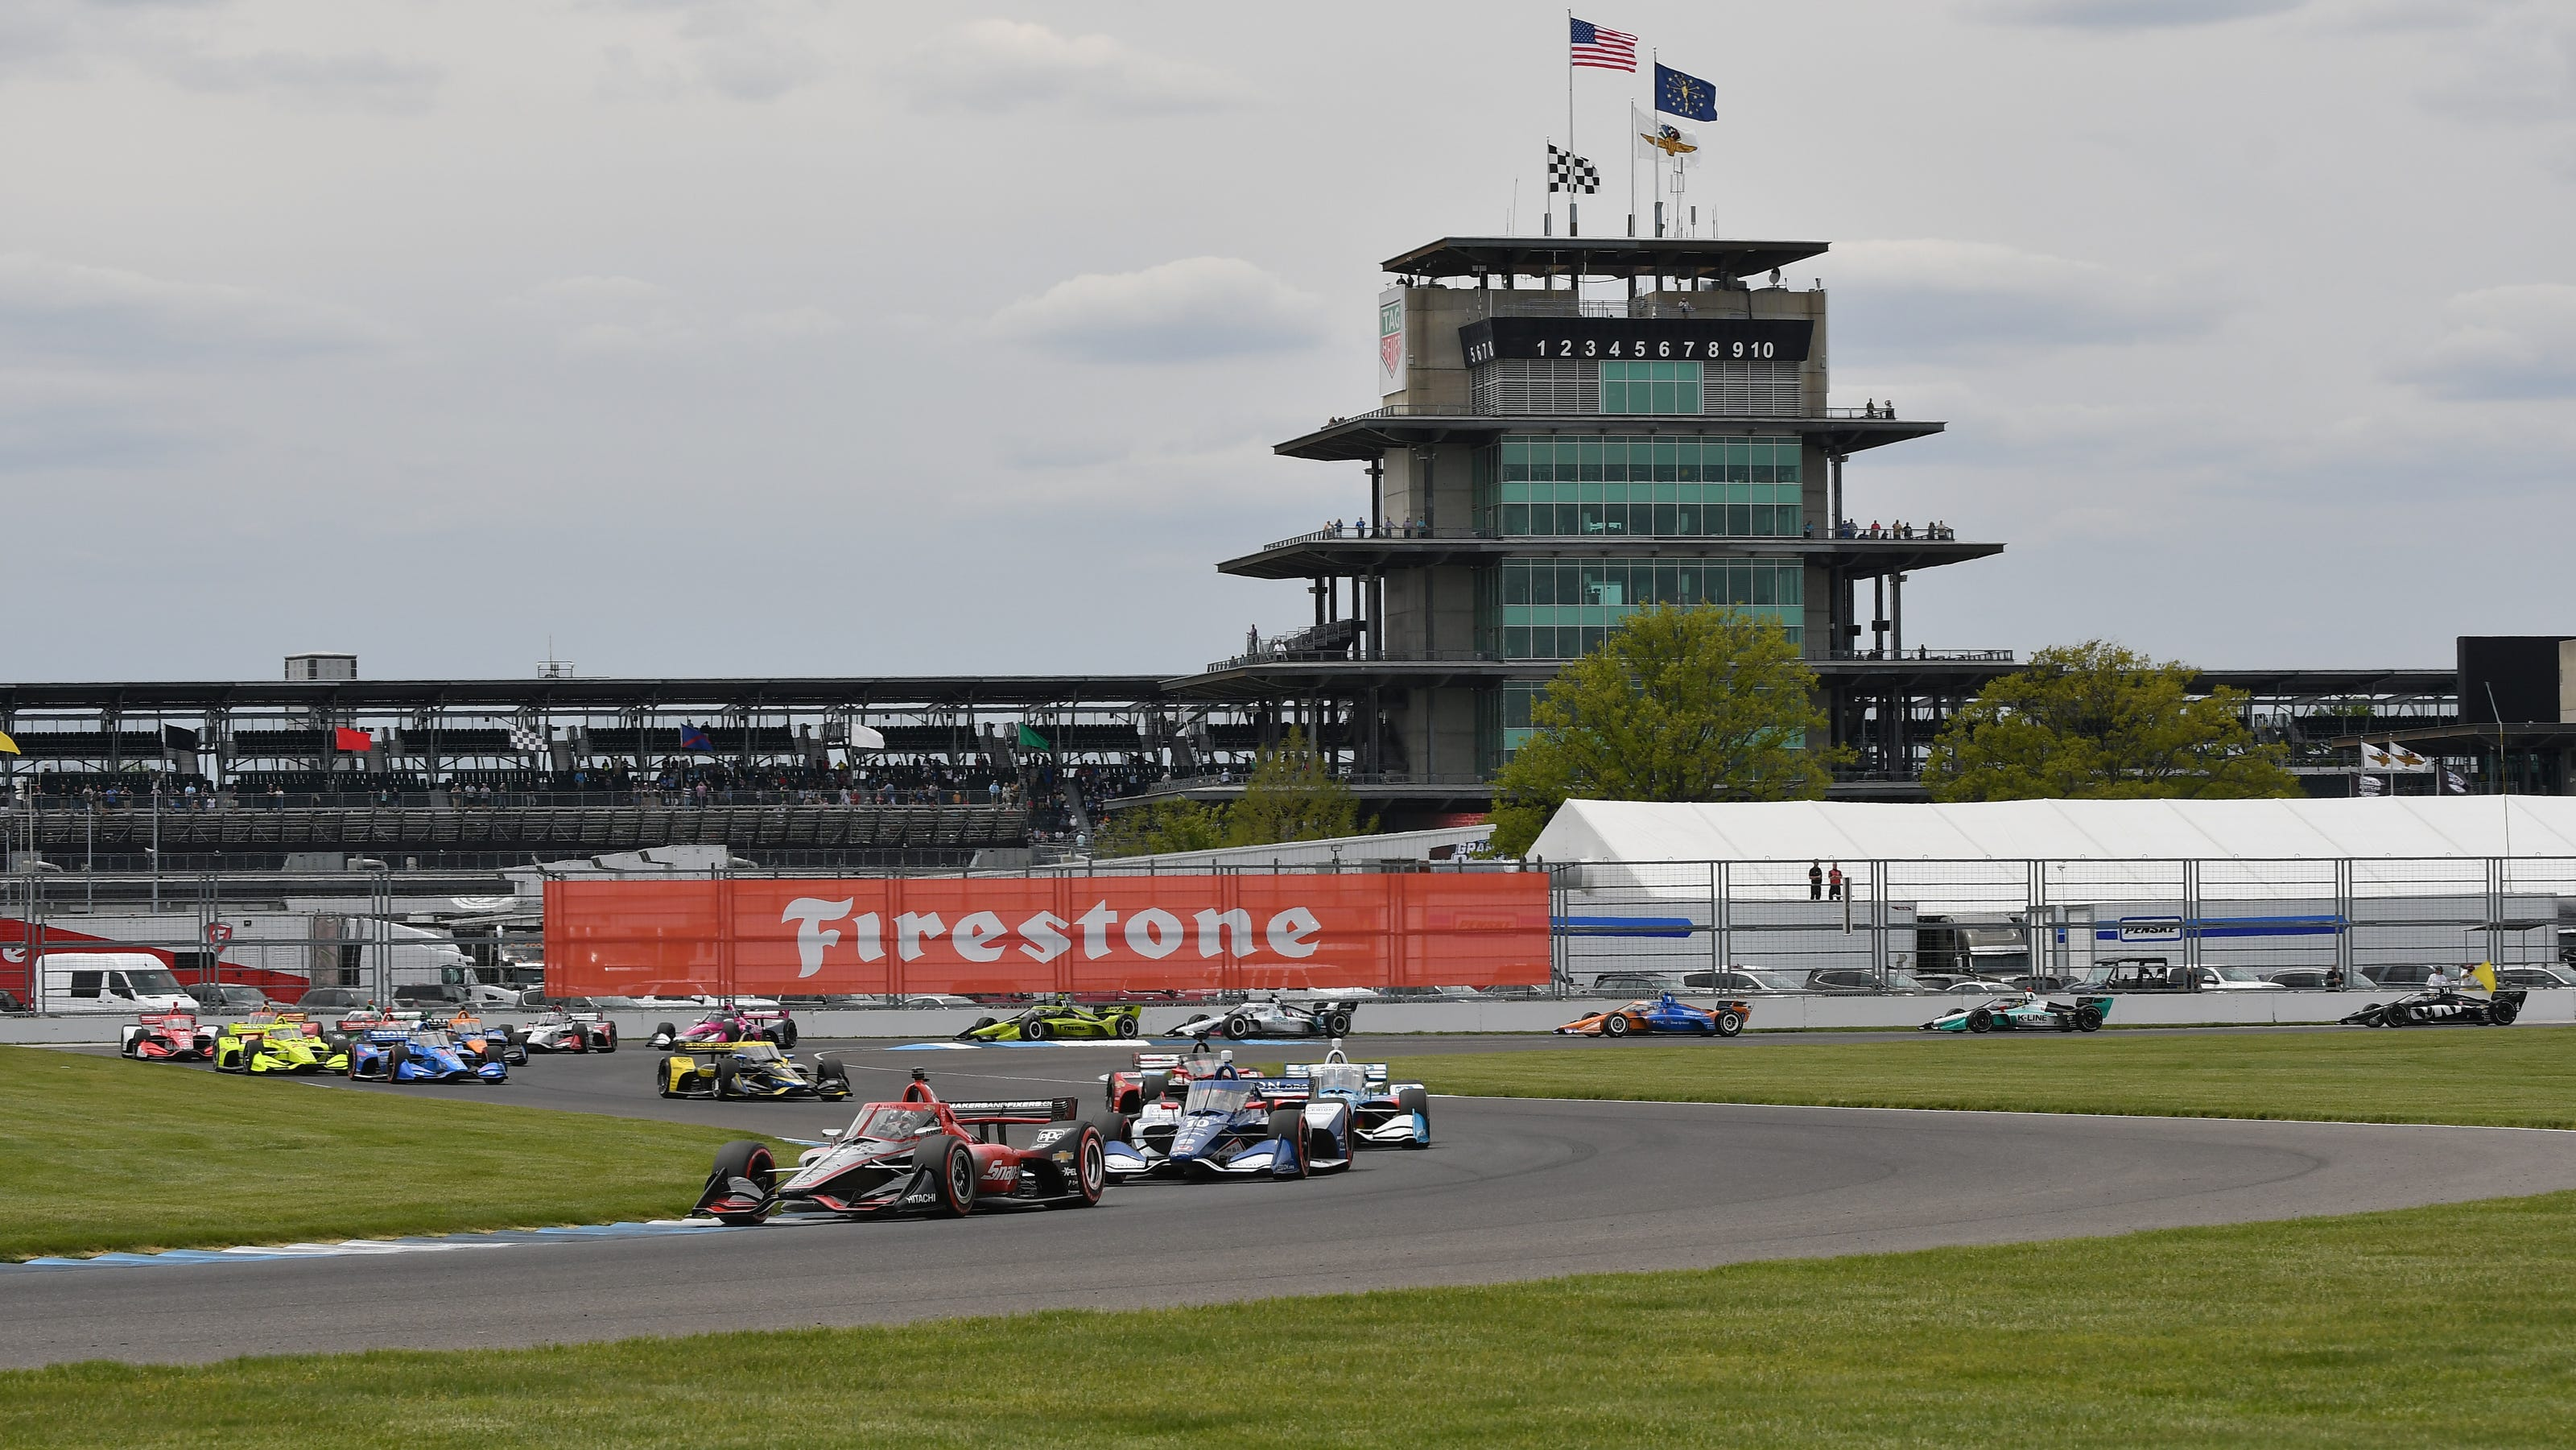 What we know about IndyCar's 2022 calendar from NASCAR's schedule release - IndyStar